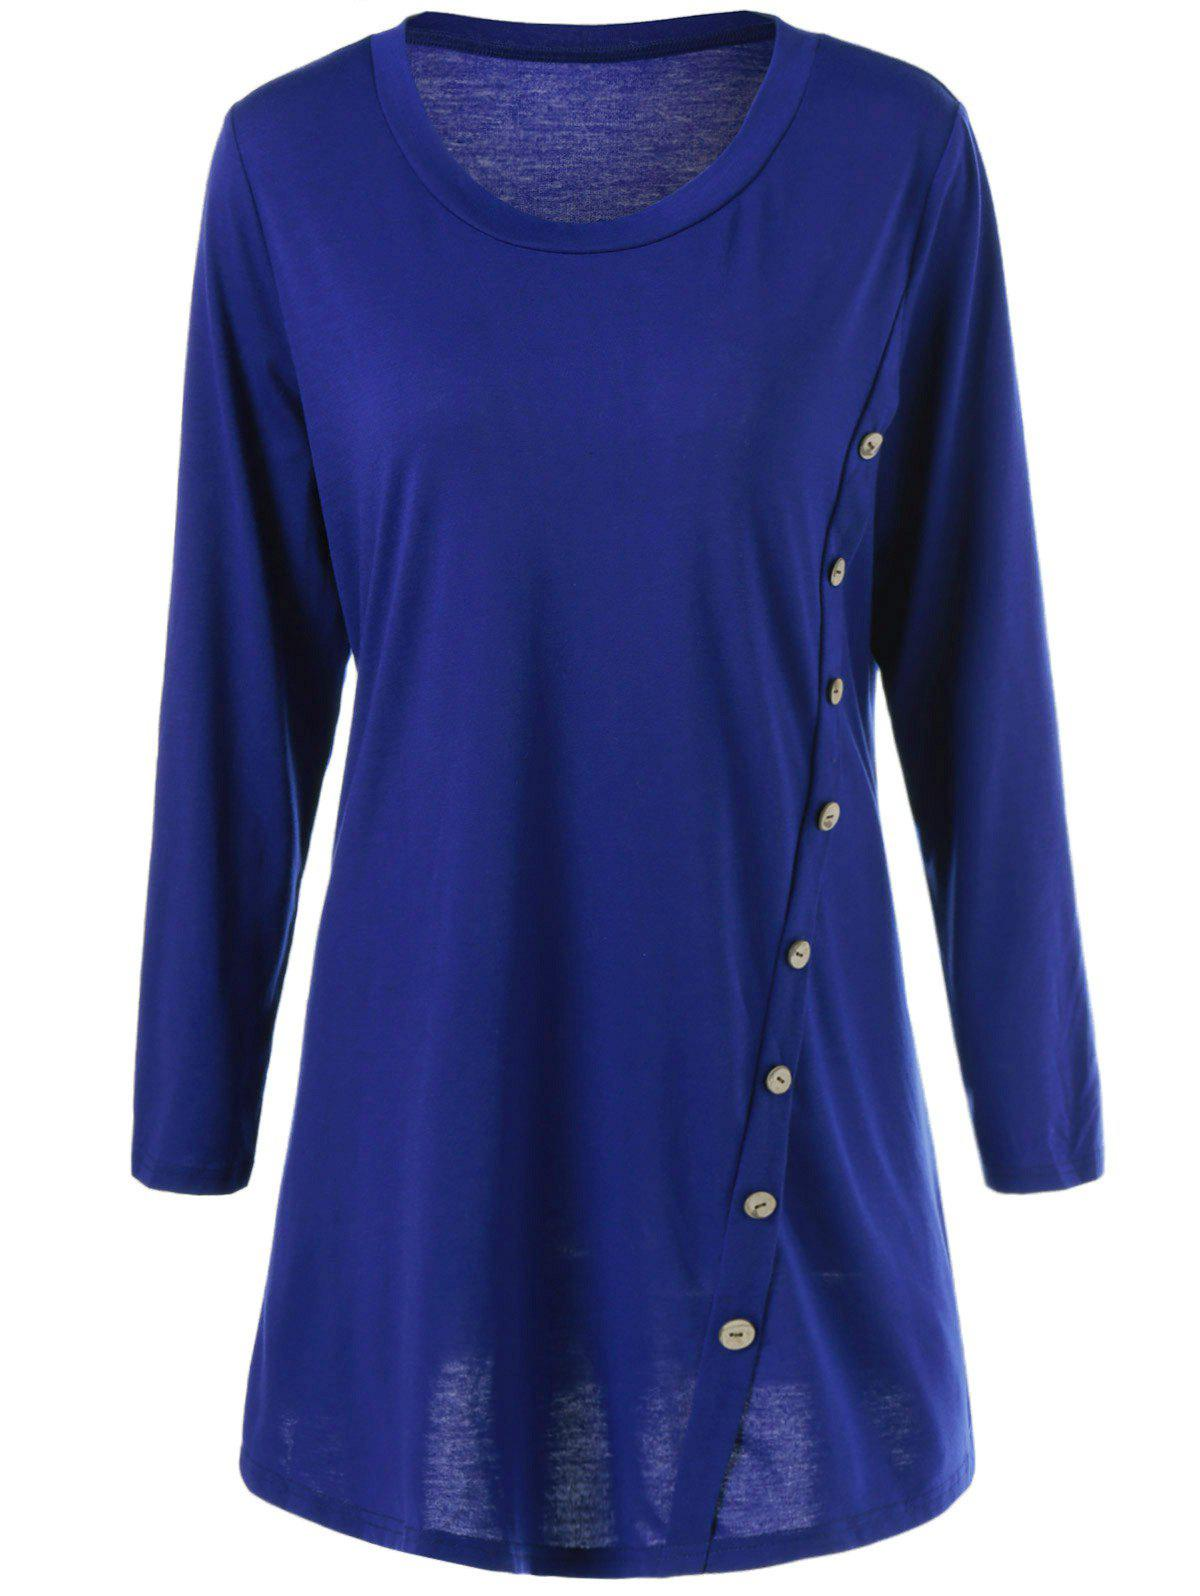 Plus Size Inclined Button Long Sleeve T-shirt Dress plus size inclined button hankerchief dress